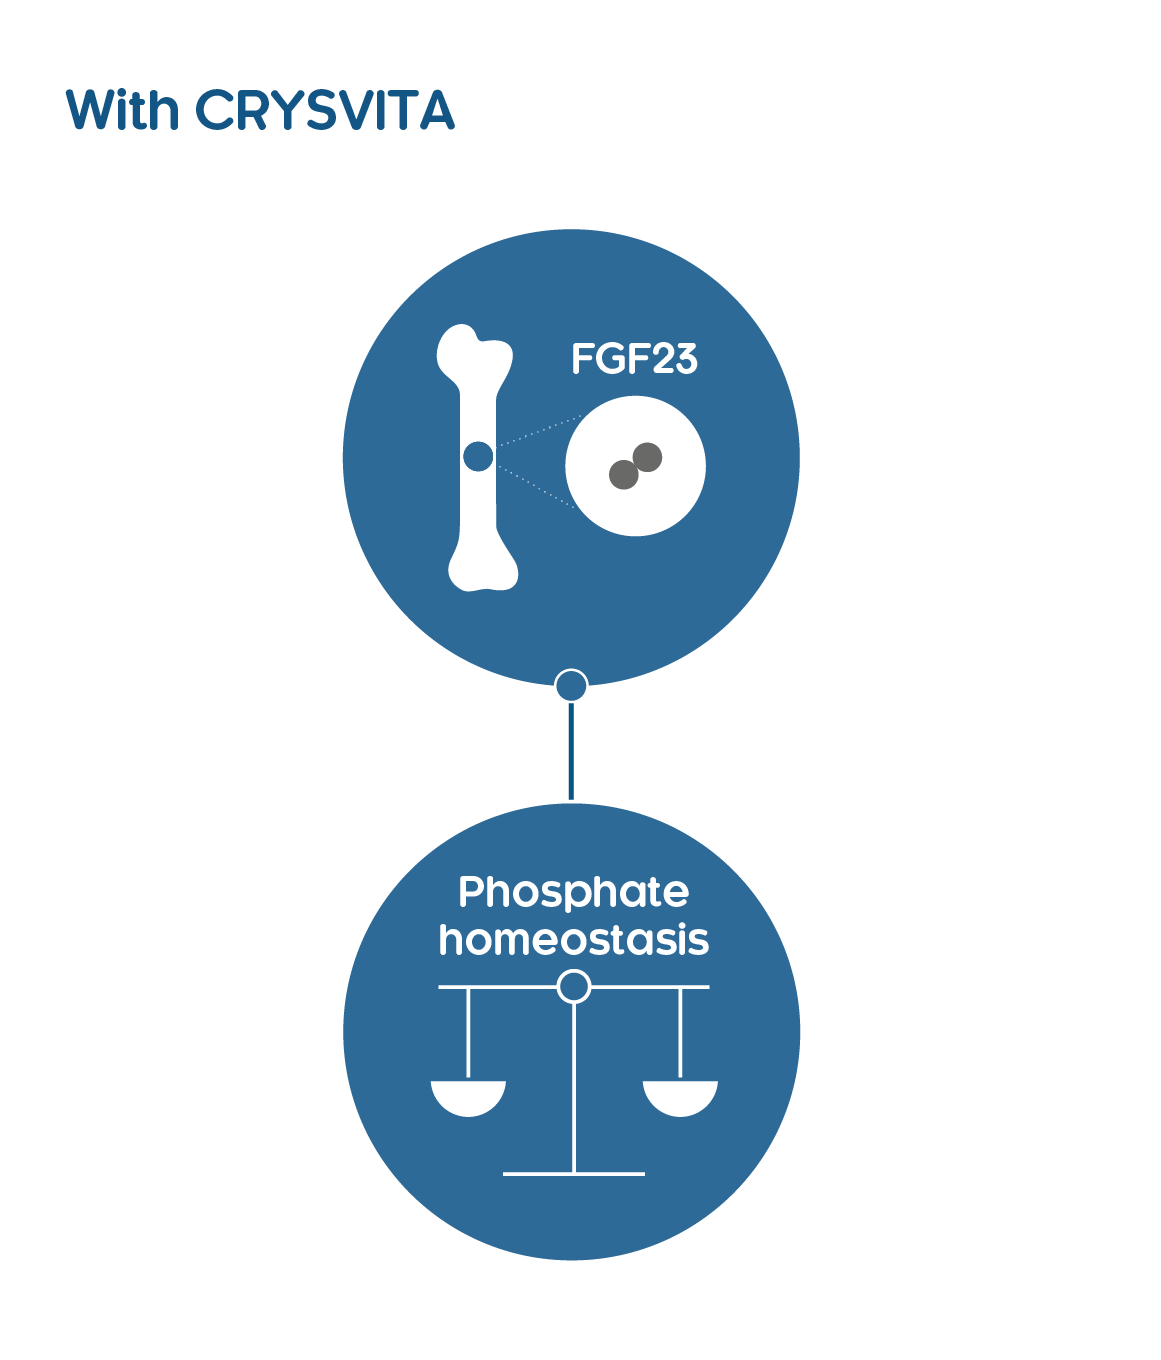 CRYSVITA binds and inhibits FGF23, restoring phosphate homeostasis.